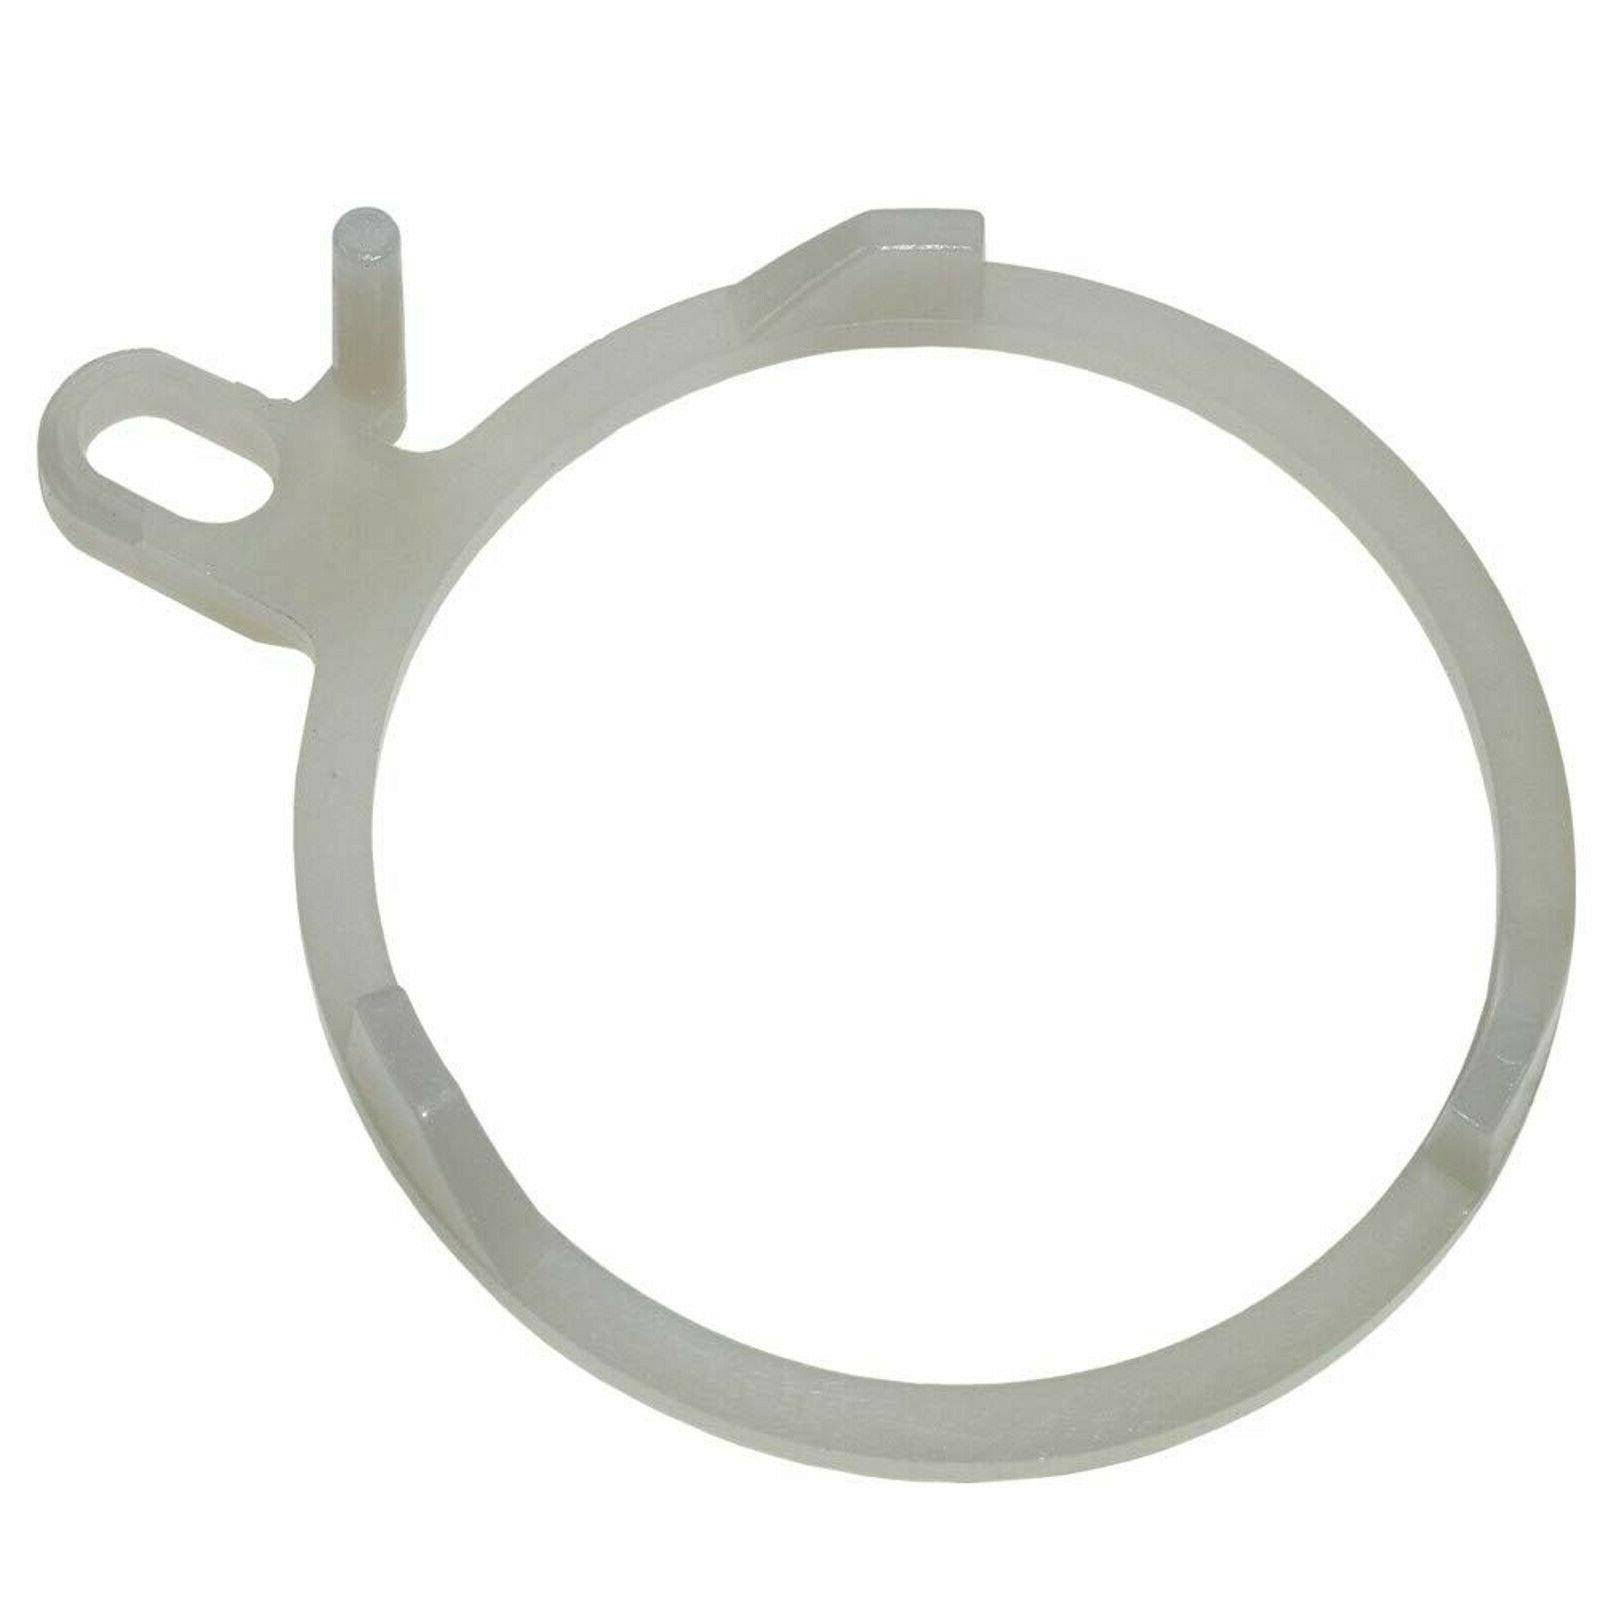 HQRP Clutch for Pulley,